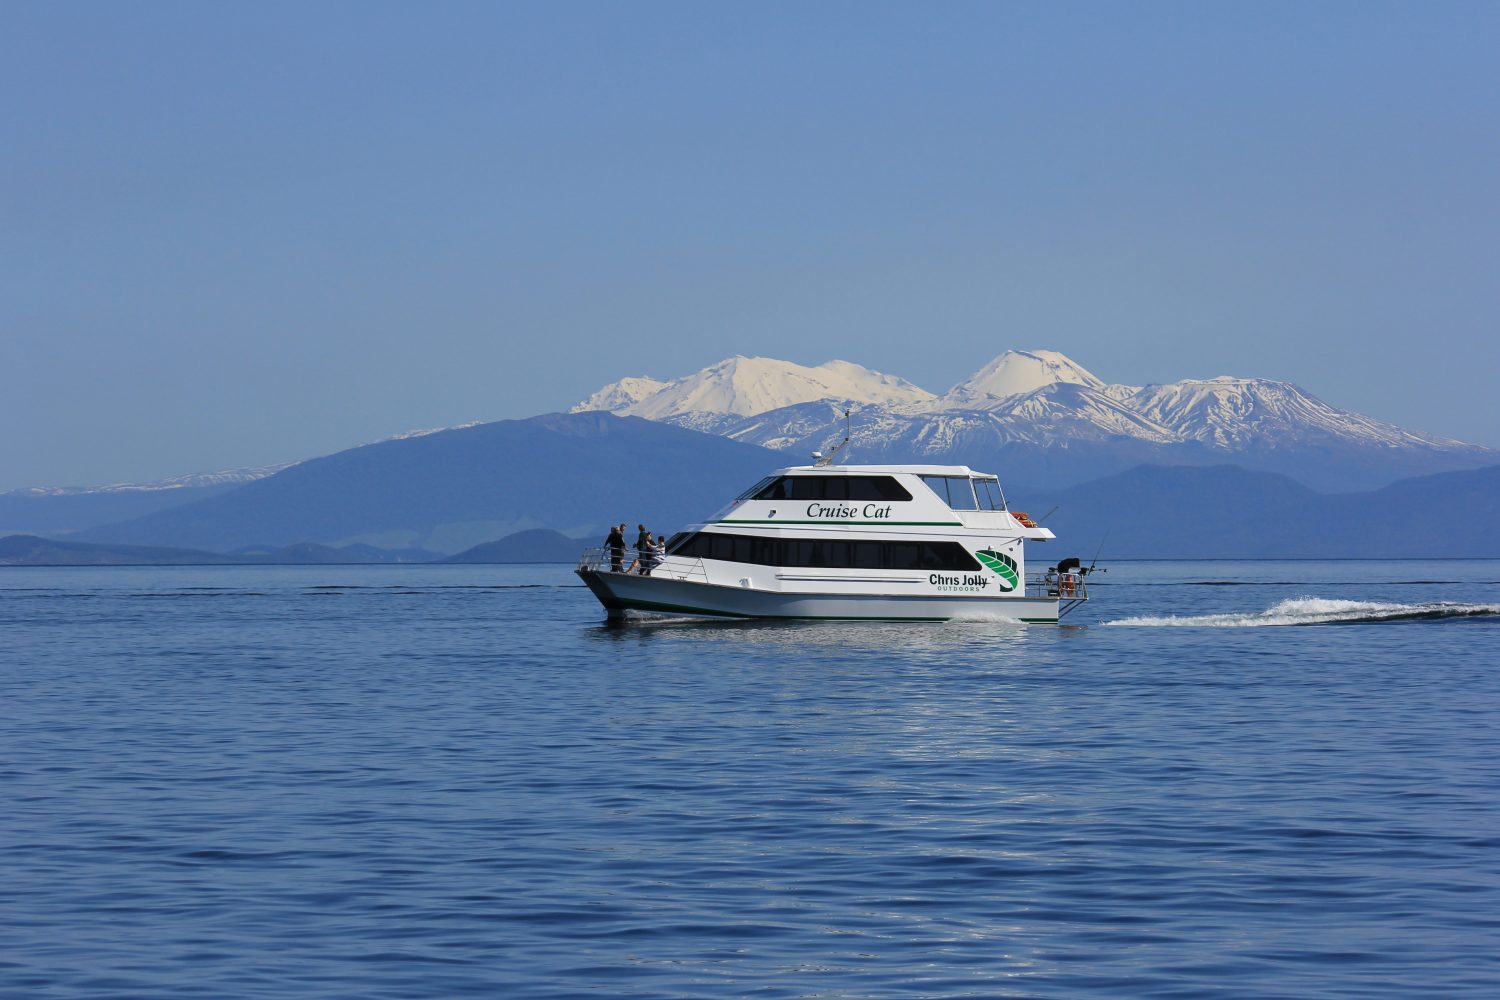 Boat on a lake with snow capped mountains behind